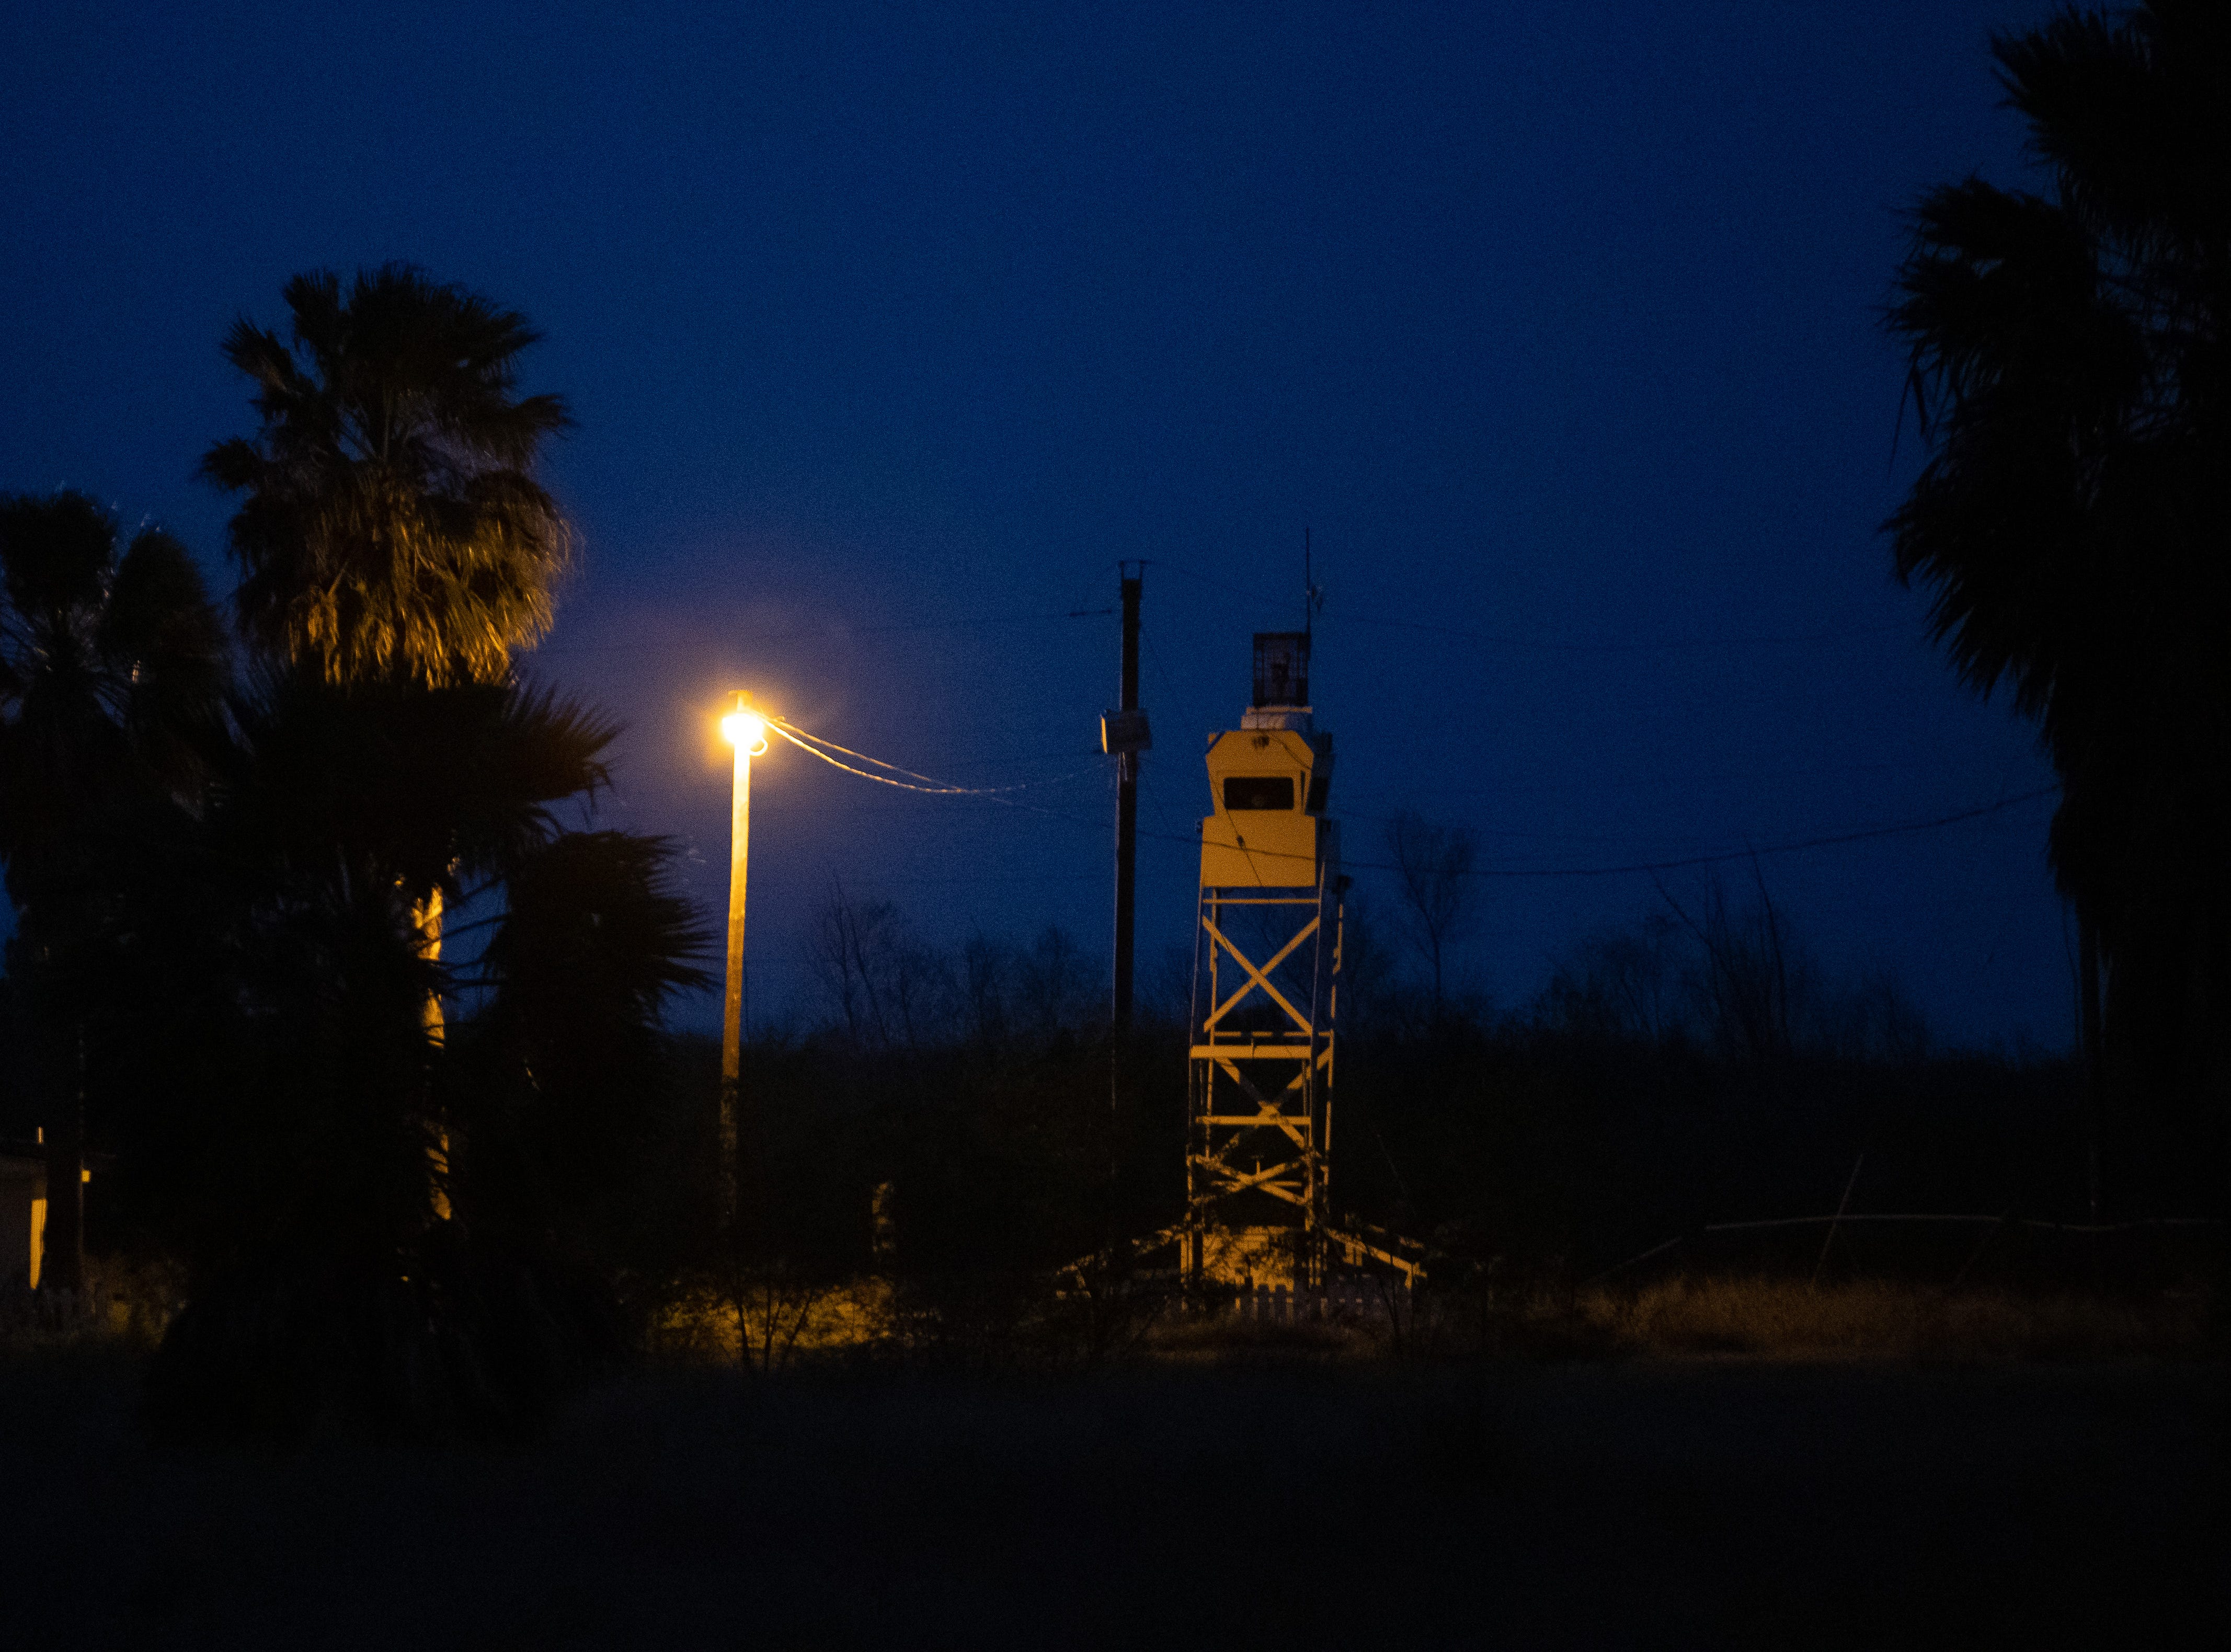 A Customs and Border Protection tower along the Rio Grande river near theLa Lomita Mission in Mission, Tx  on Tuesday, Feb. 5, 2019.